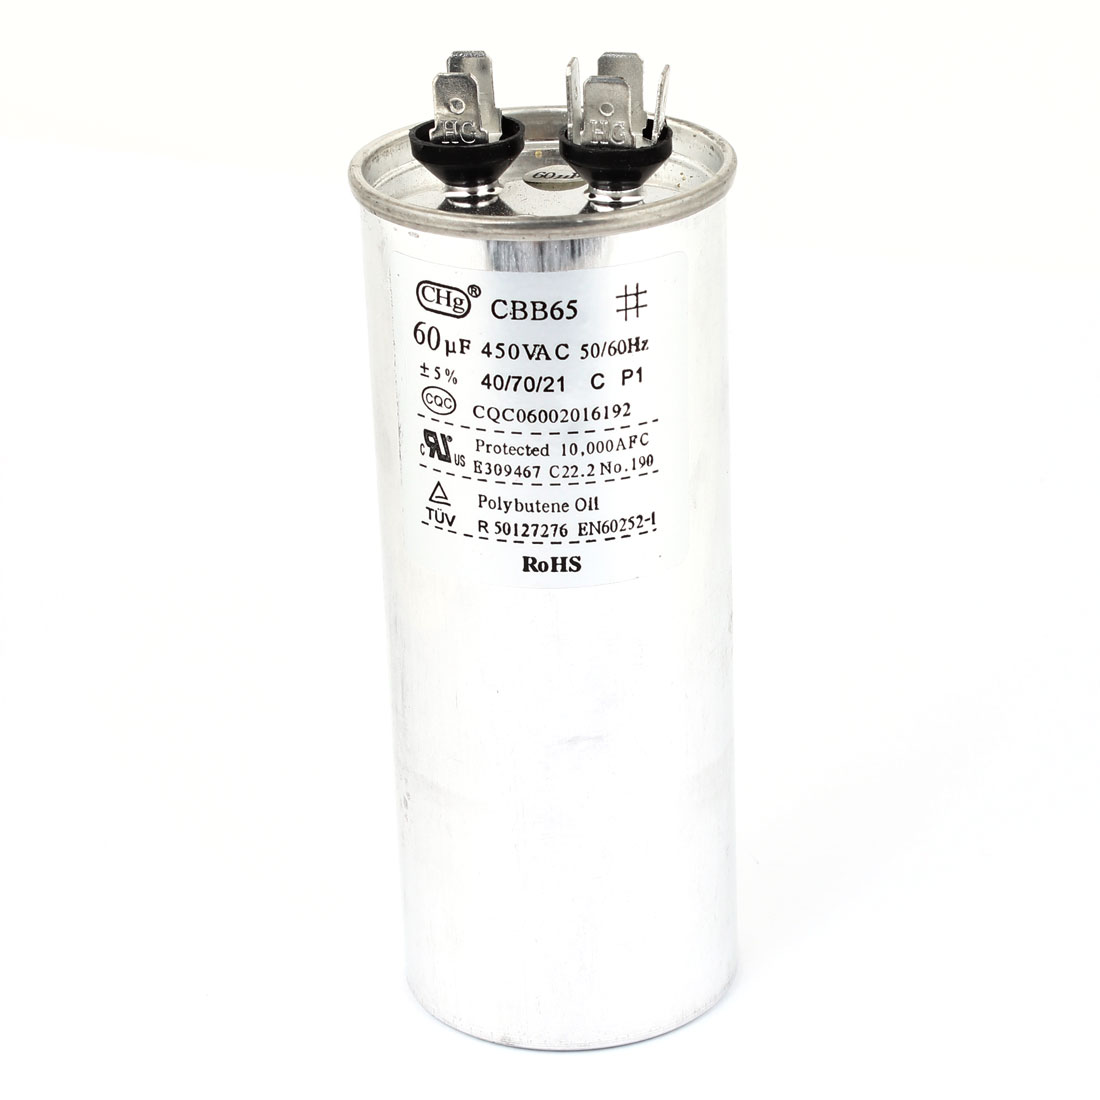 "AC 450V 50/60Hz 60uF Motor Run Capacitor for Air Conditioner 5.3"" High"